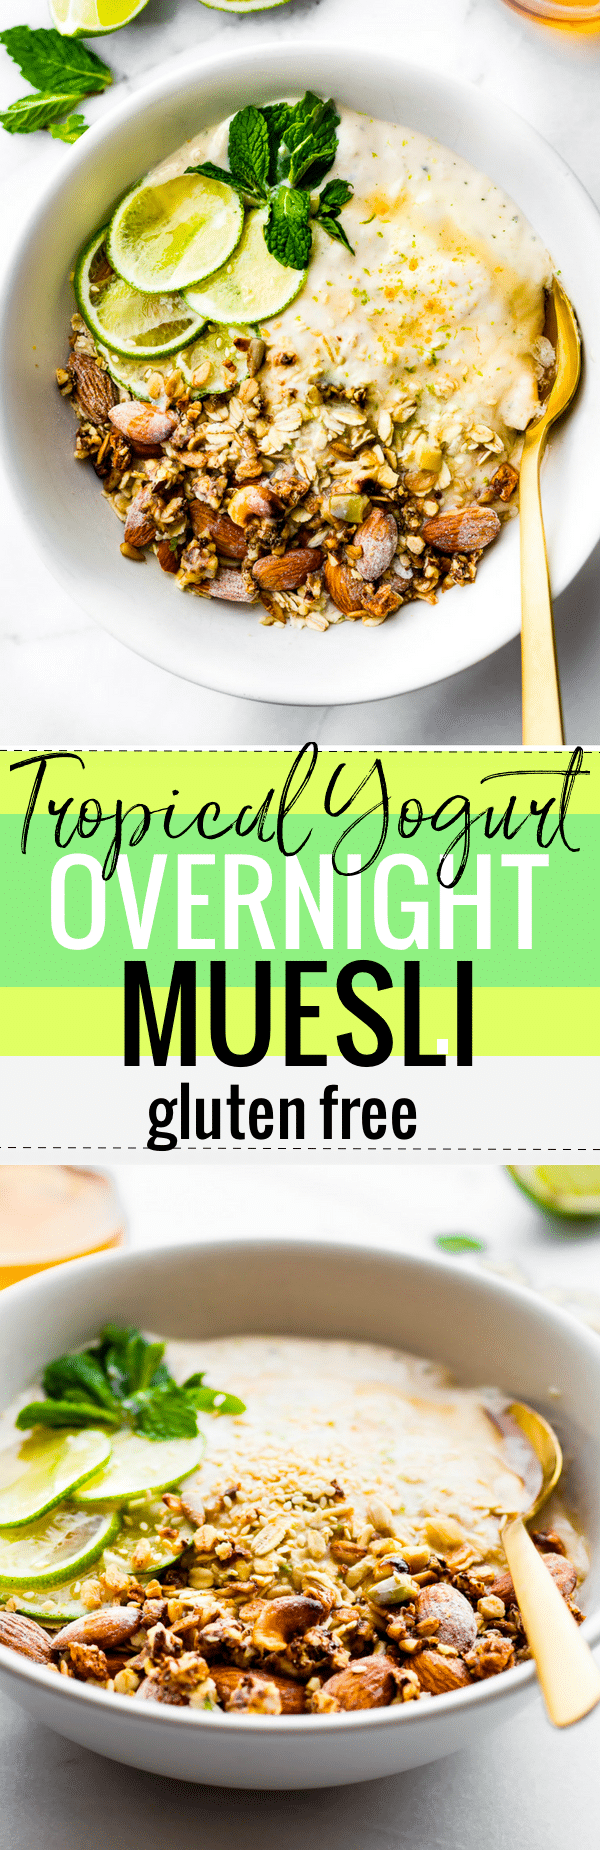 This Zesty Tropical Yogurt Overnight Muesli recipe is the perfect make ahead breakfast bowl! Gluten- free, nutrient rich, and made with siggi's yogurt for a protein boost! #Partnering with @siggisdairy!